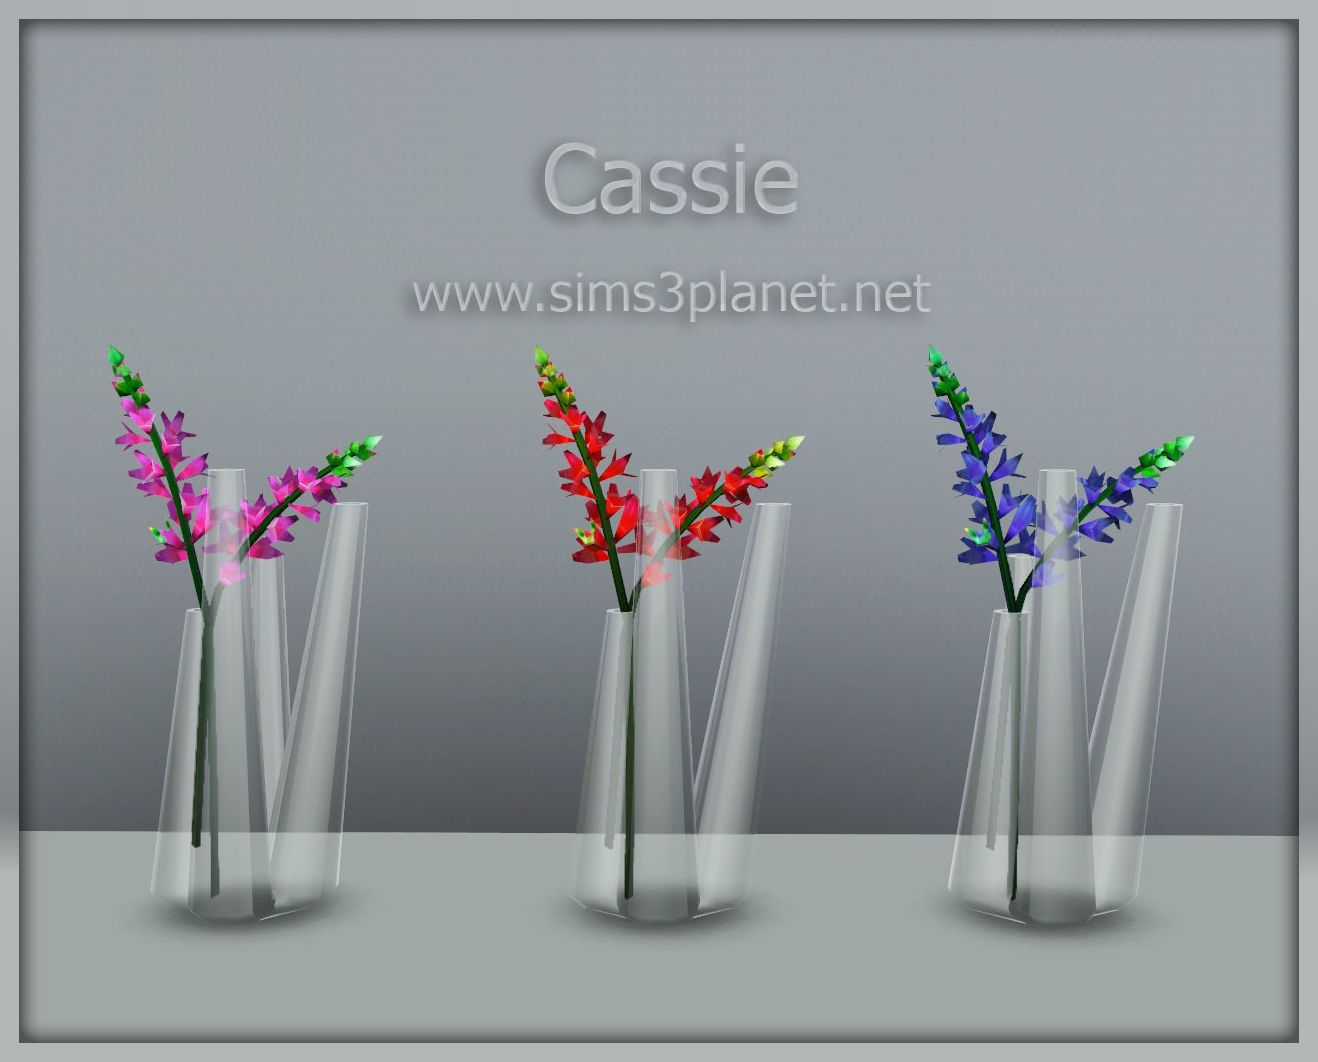 Glass vase with flowers conversion by Cassie